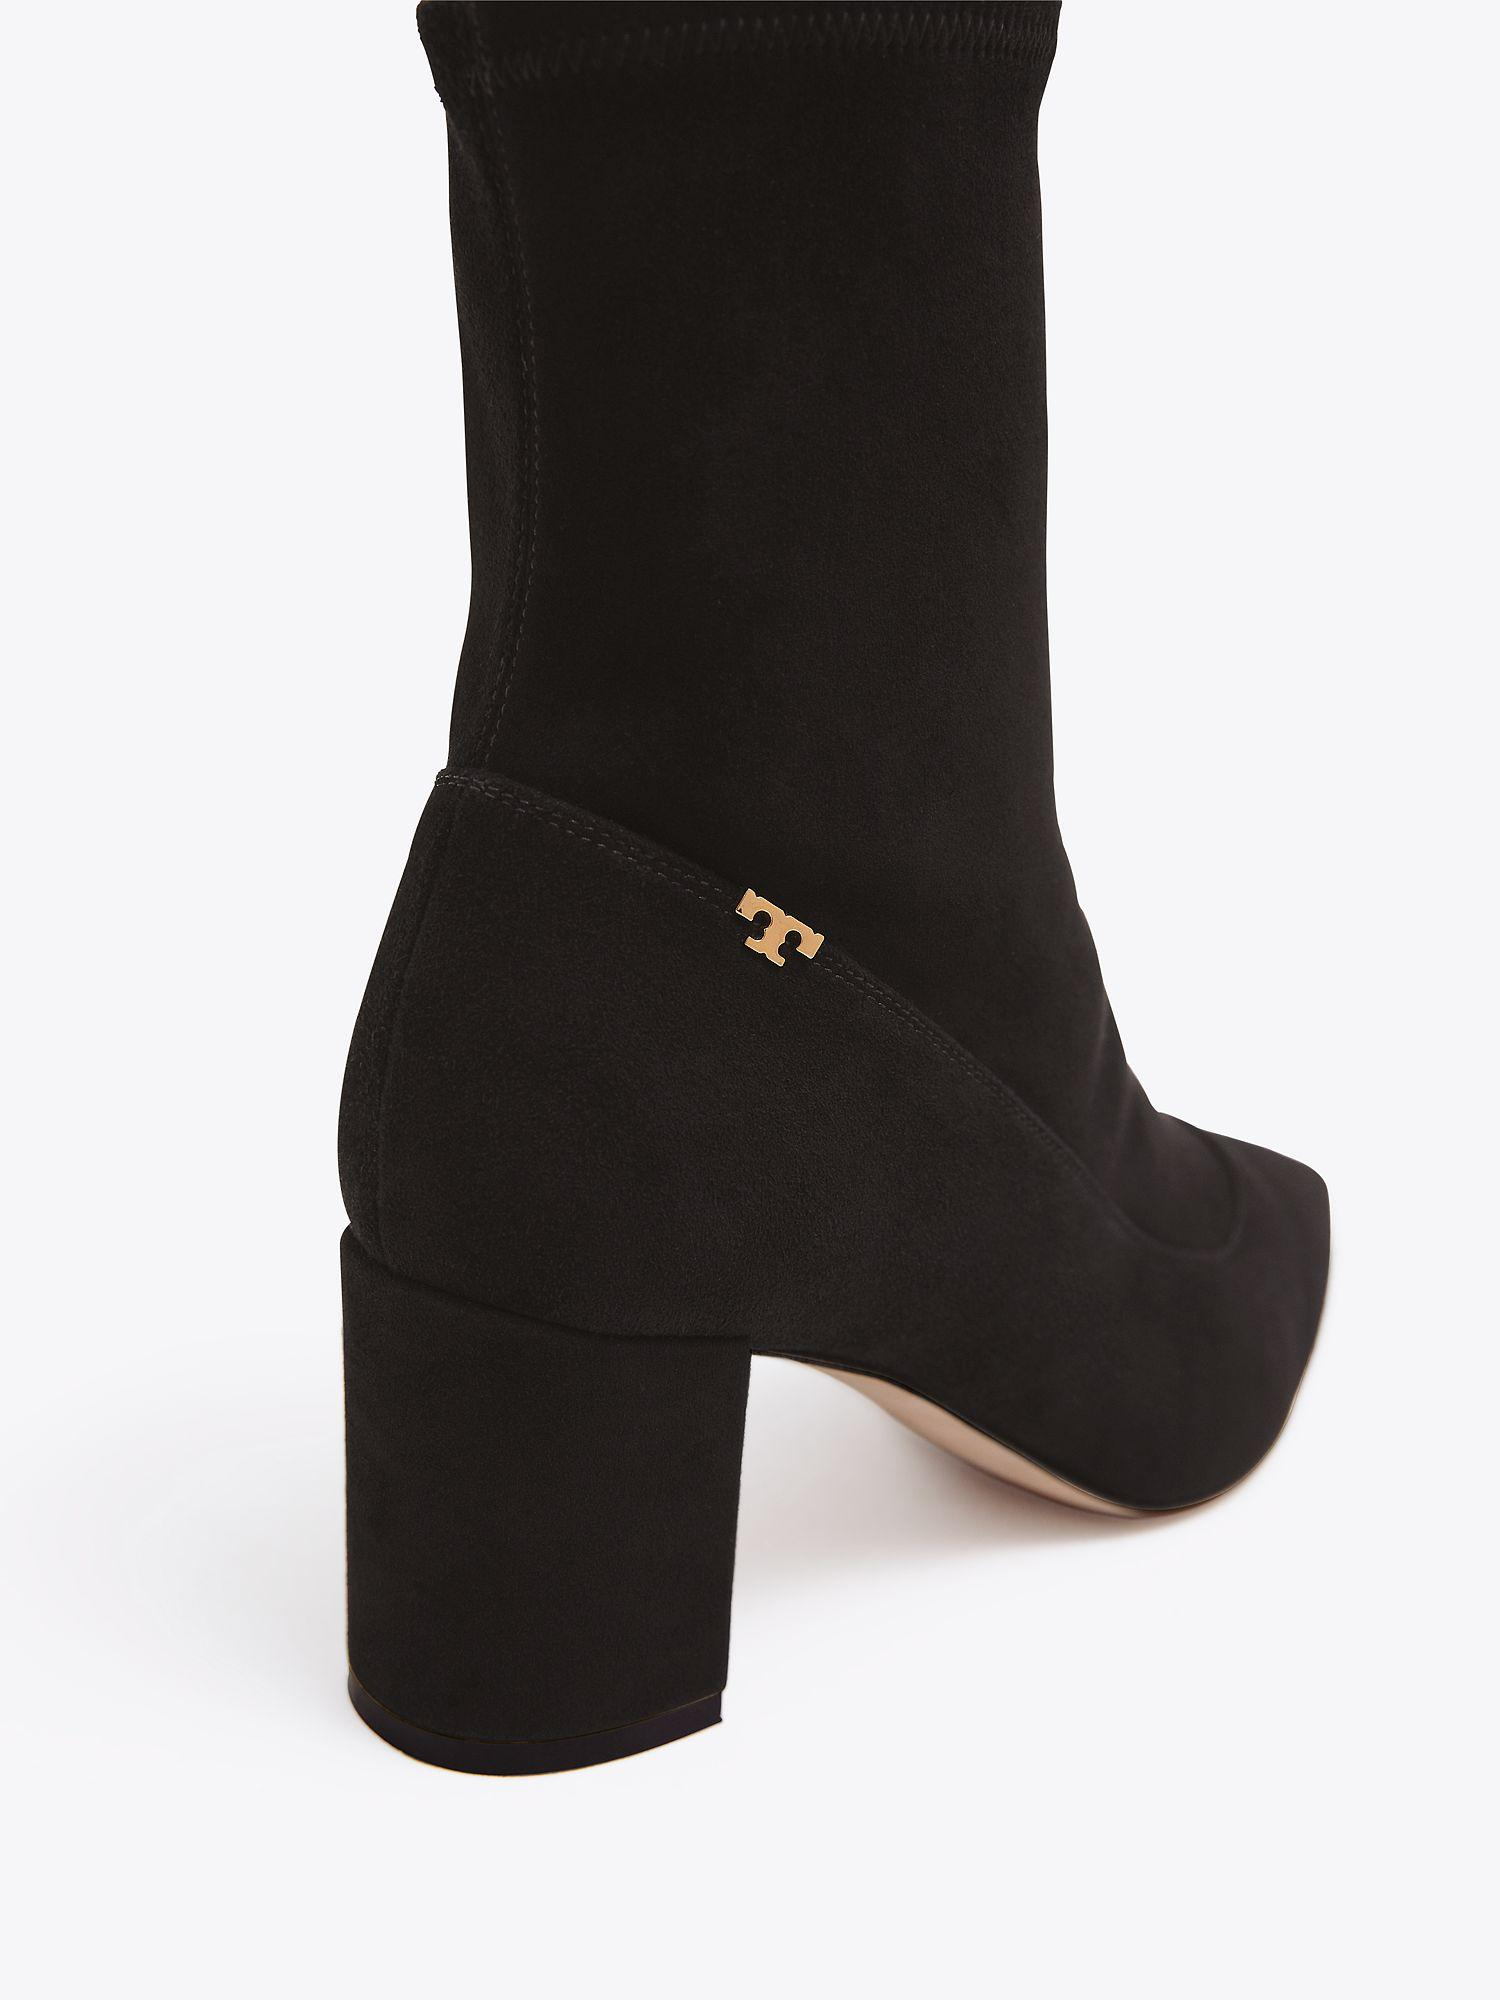 56a6c29802ad Tory Burch Penelope Stretch Bootie in Black - Save 19% - Lyst